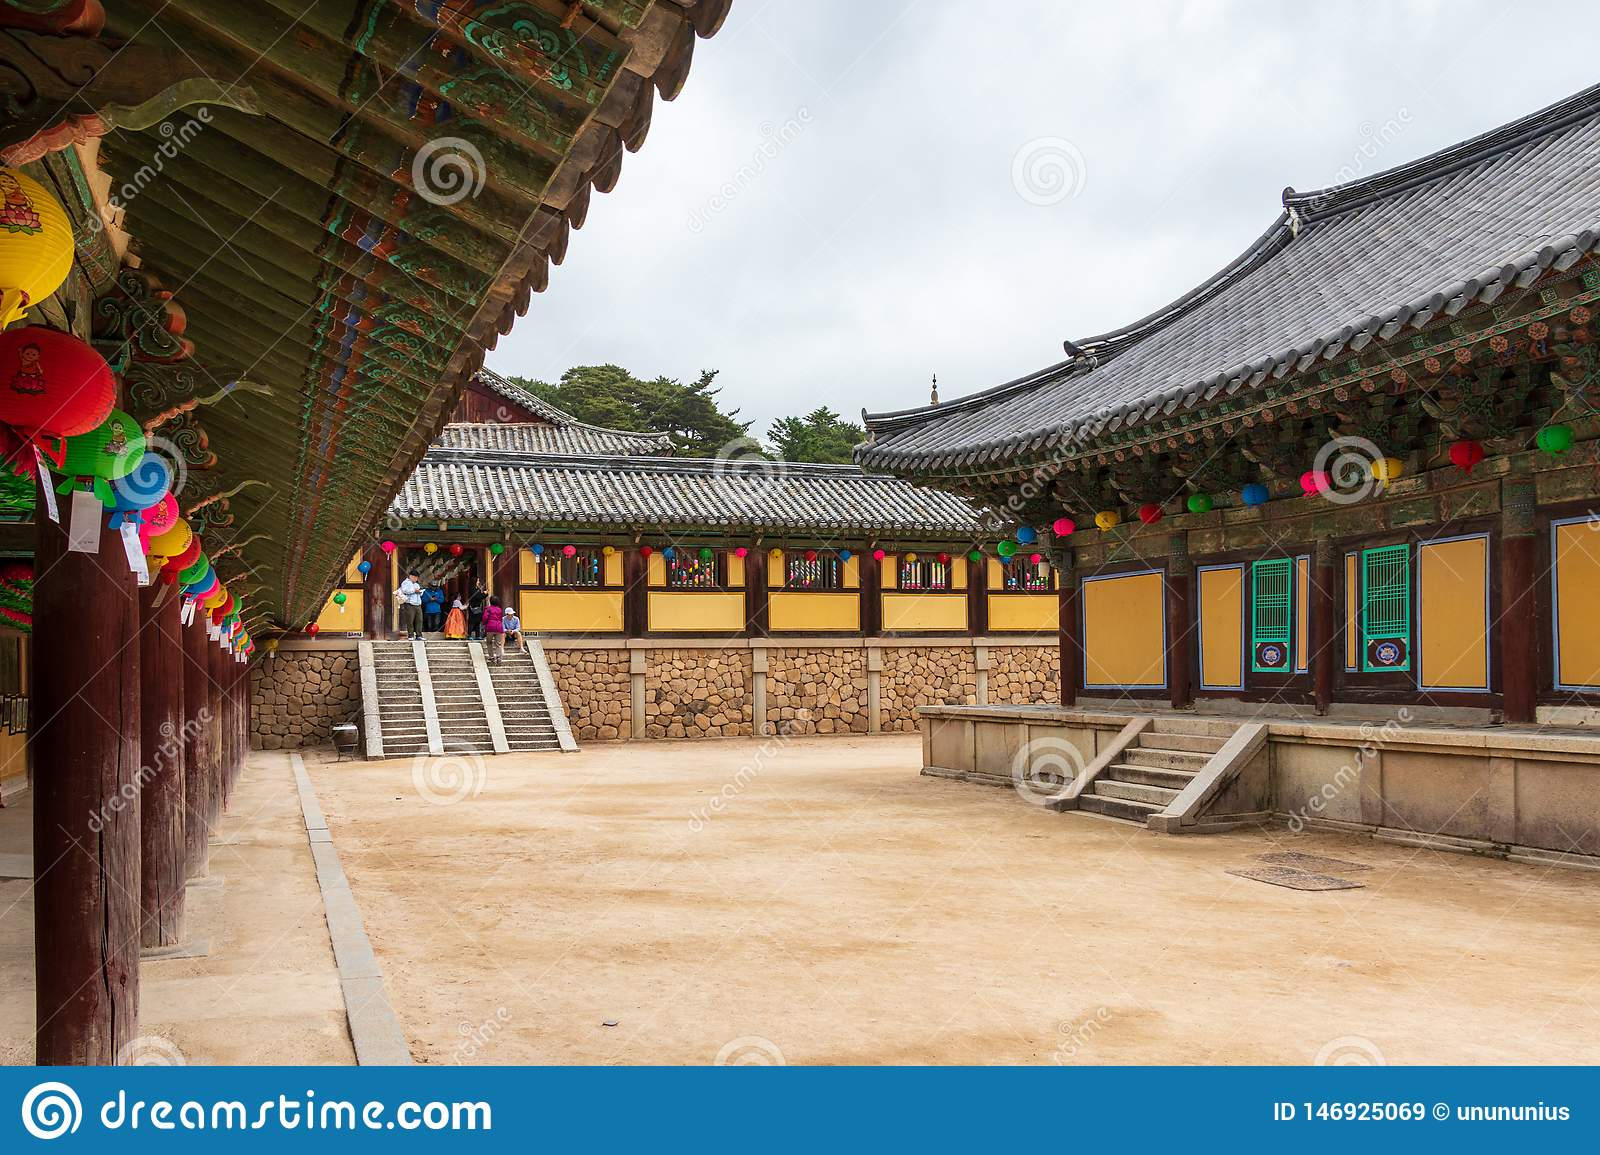 Inside panorama of Korean buddhistic Bulguksa Temple with many lanterns to celebrate buddhas birthday on a clear day. Located in